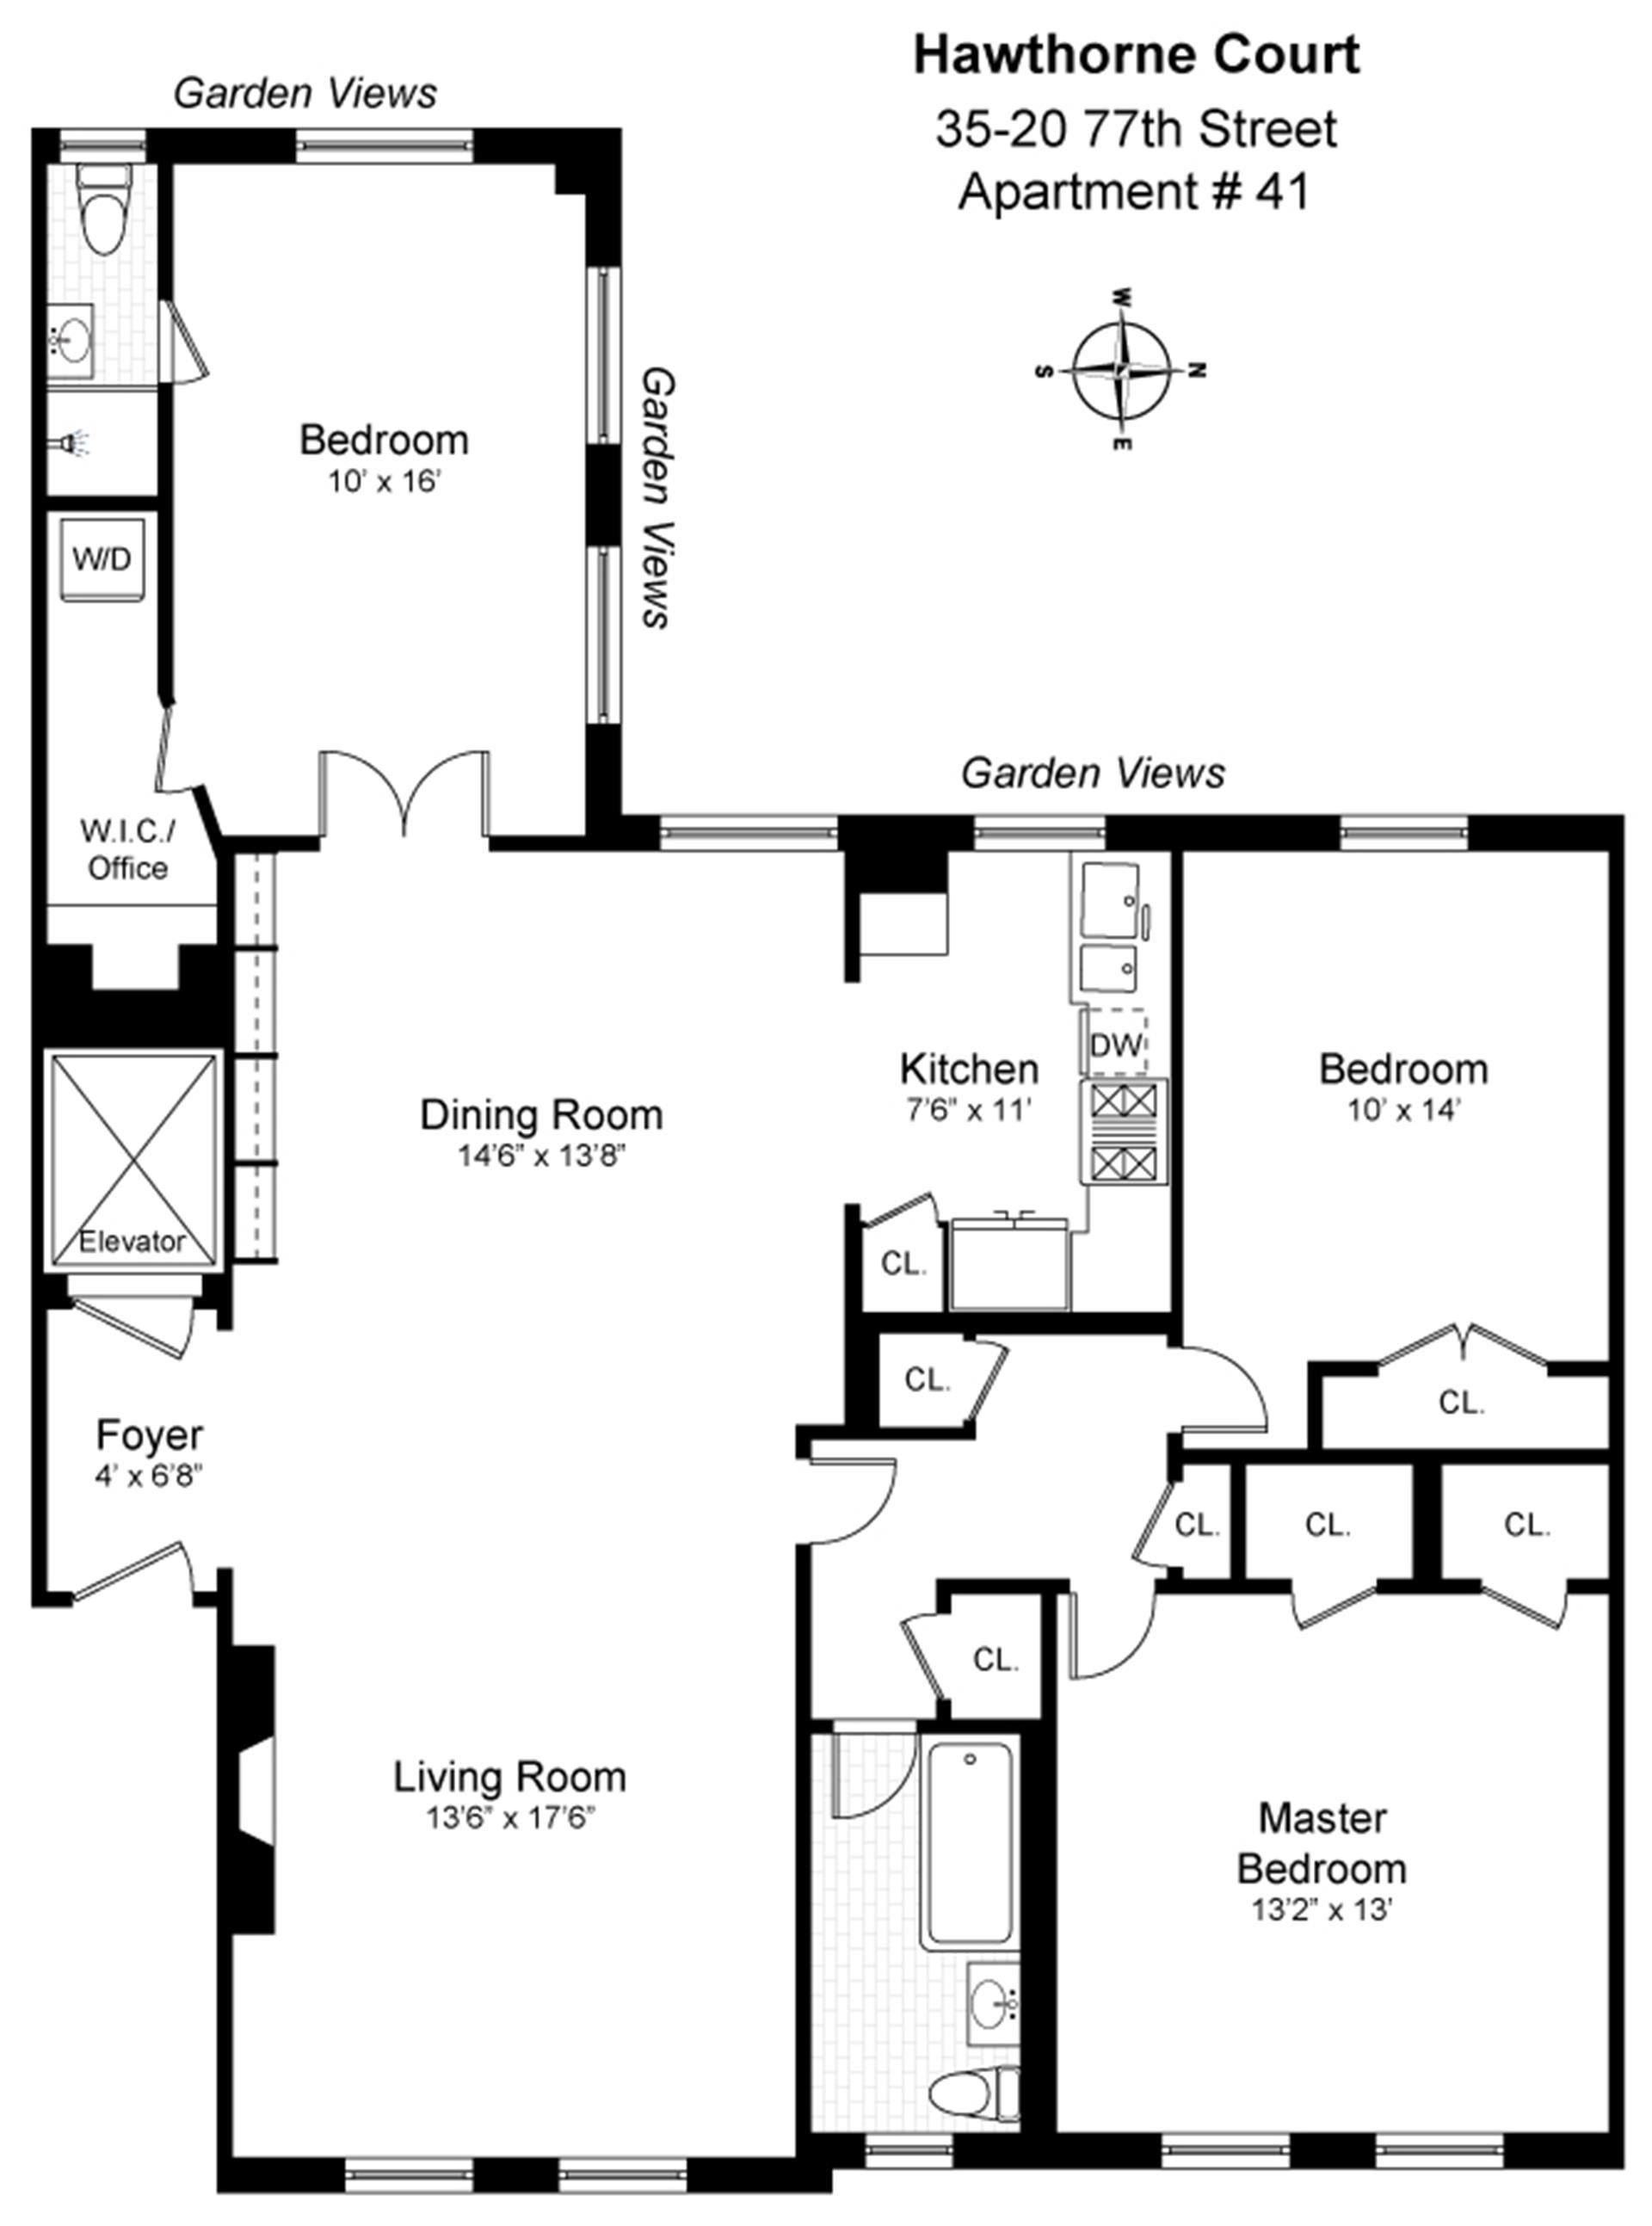 Floor plan of 35-20 77th St, 41 - Jackson Heights, New York